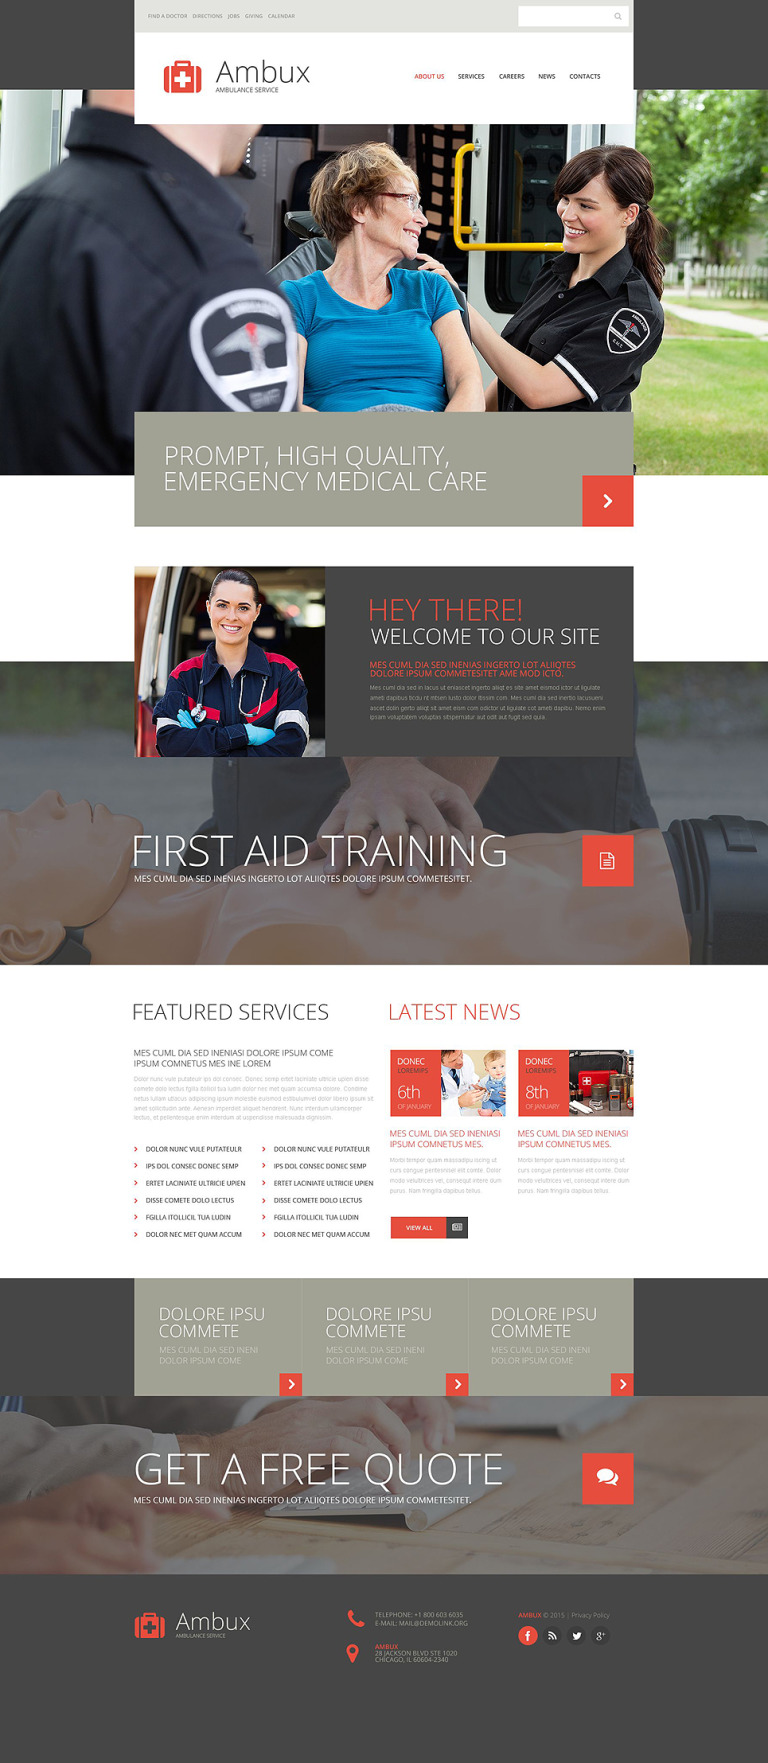 Ambulance Services Website Template New Screenshots BIG